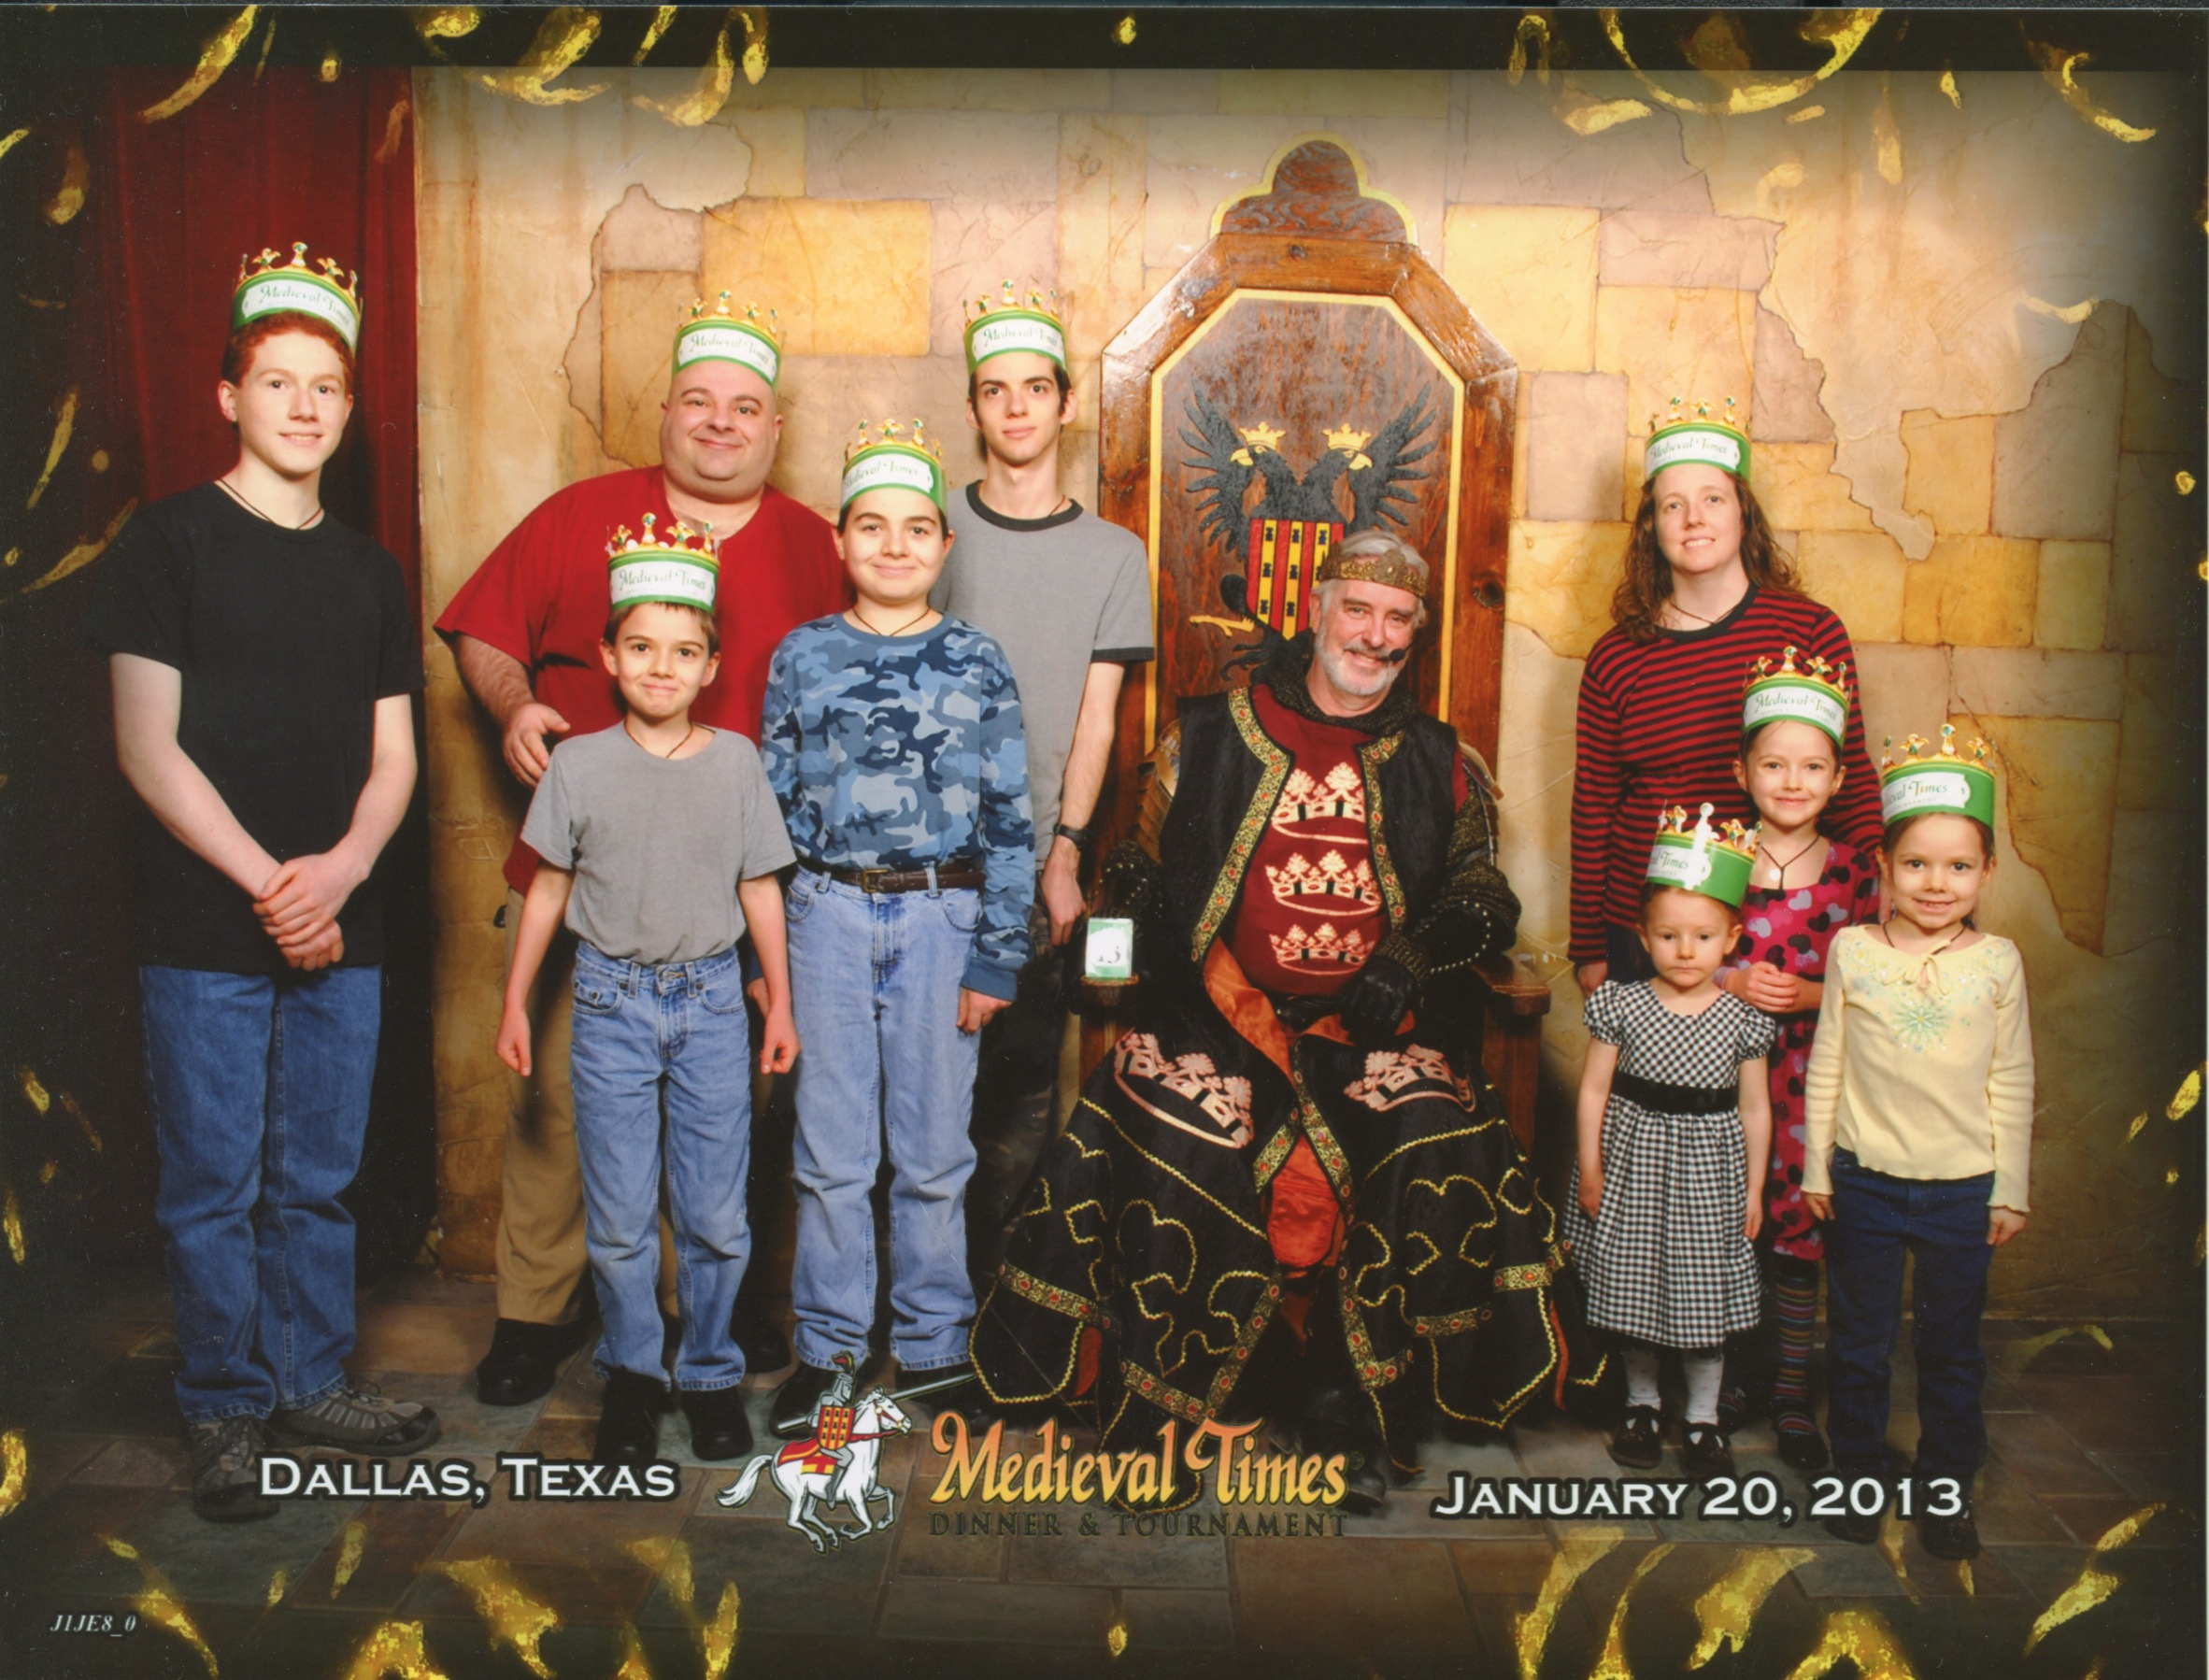 Medieval Times Throne Room. Michael, Papa, Cross, Nunzio, Joseph, The King, Jen, Catie, Jacinta and Bernie. Bottom Text: 'Dallas, Texas January 20, 2013'